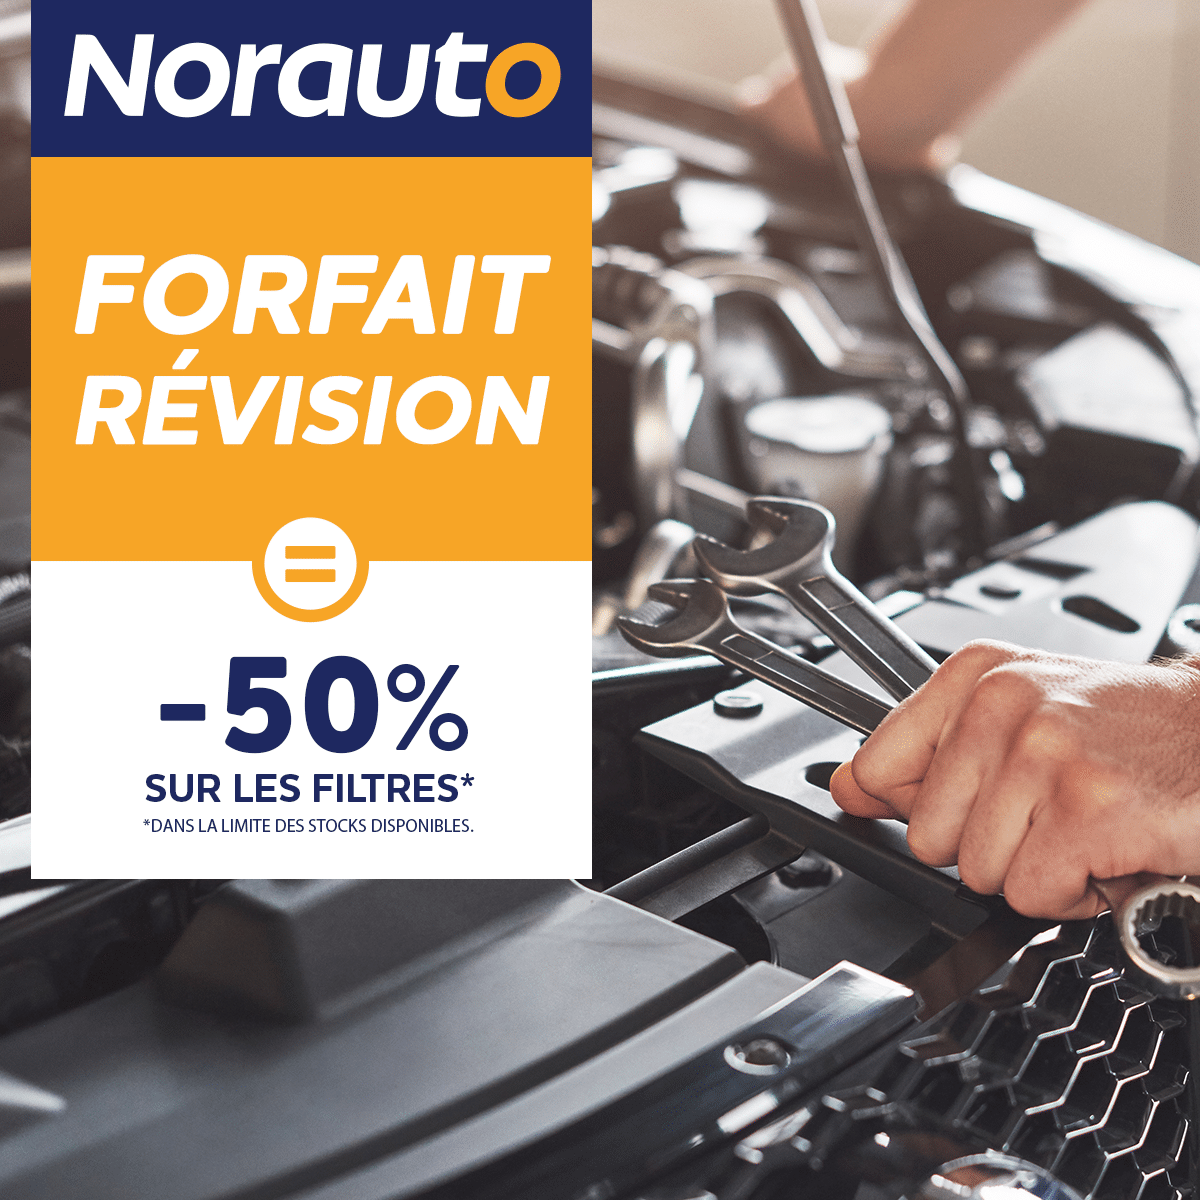 NORAUTO-PostFacebook-1200x1200px-Aout-2019-FORFAIT-REVISION (1)